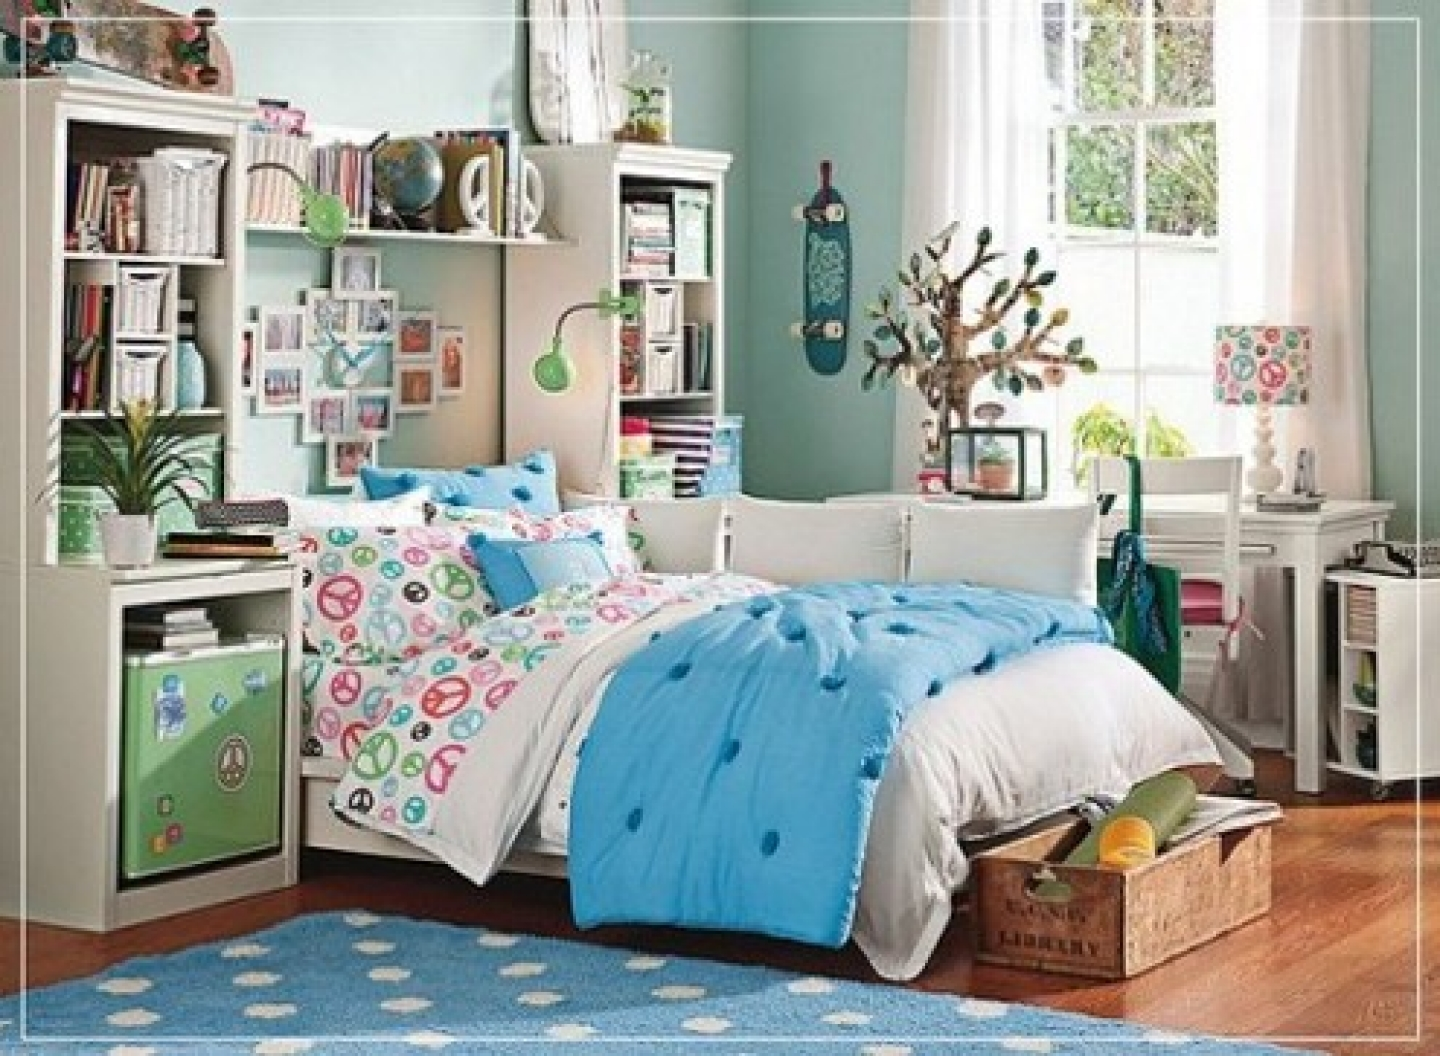 decorating ideas for teenage bedrooms photo - 1